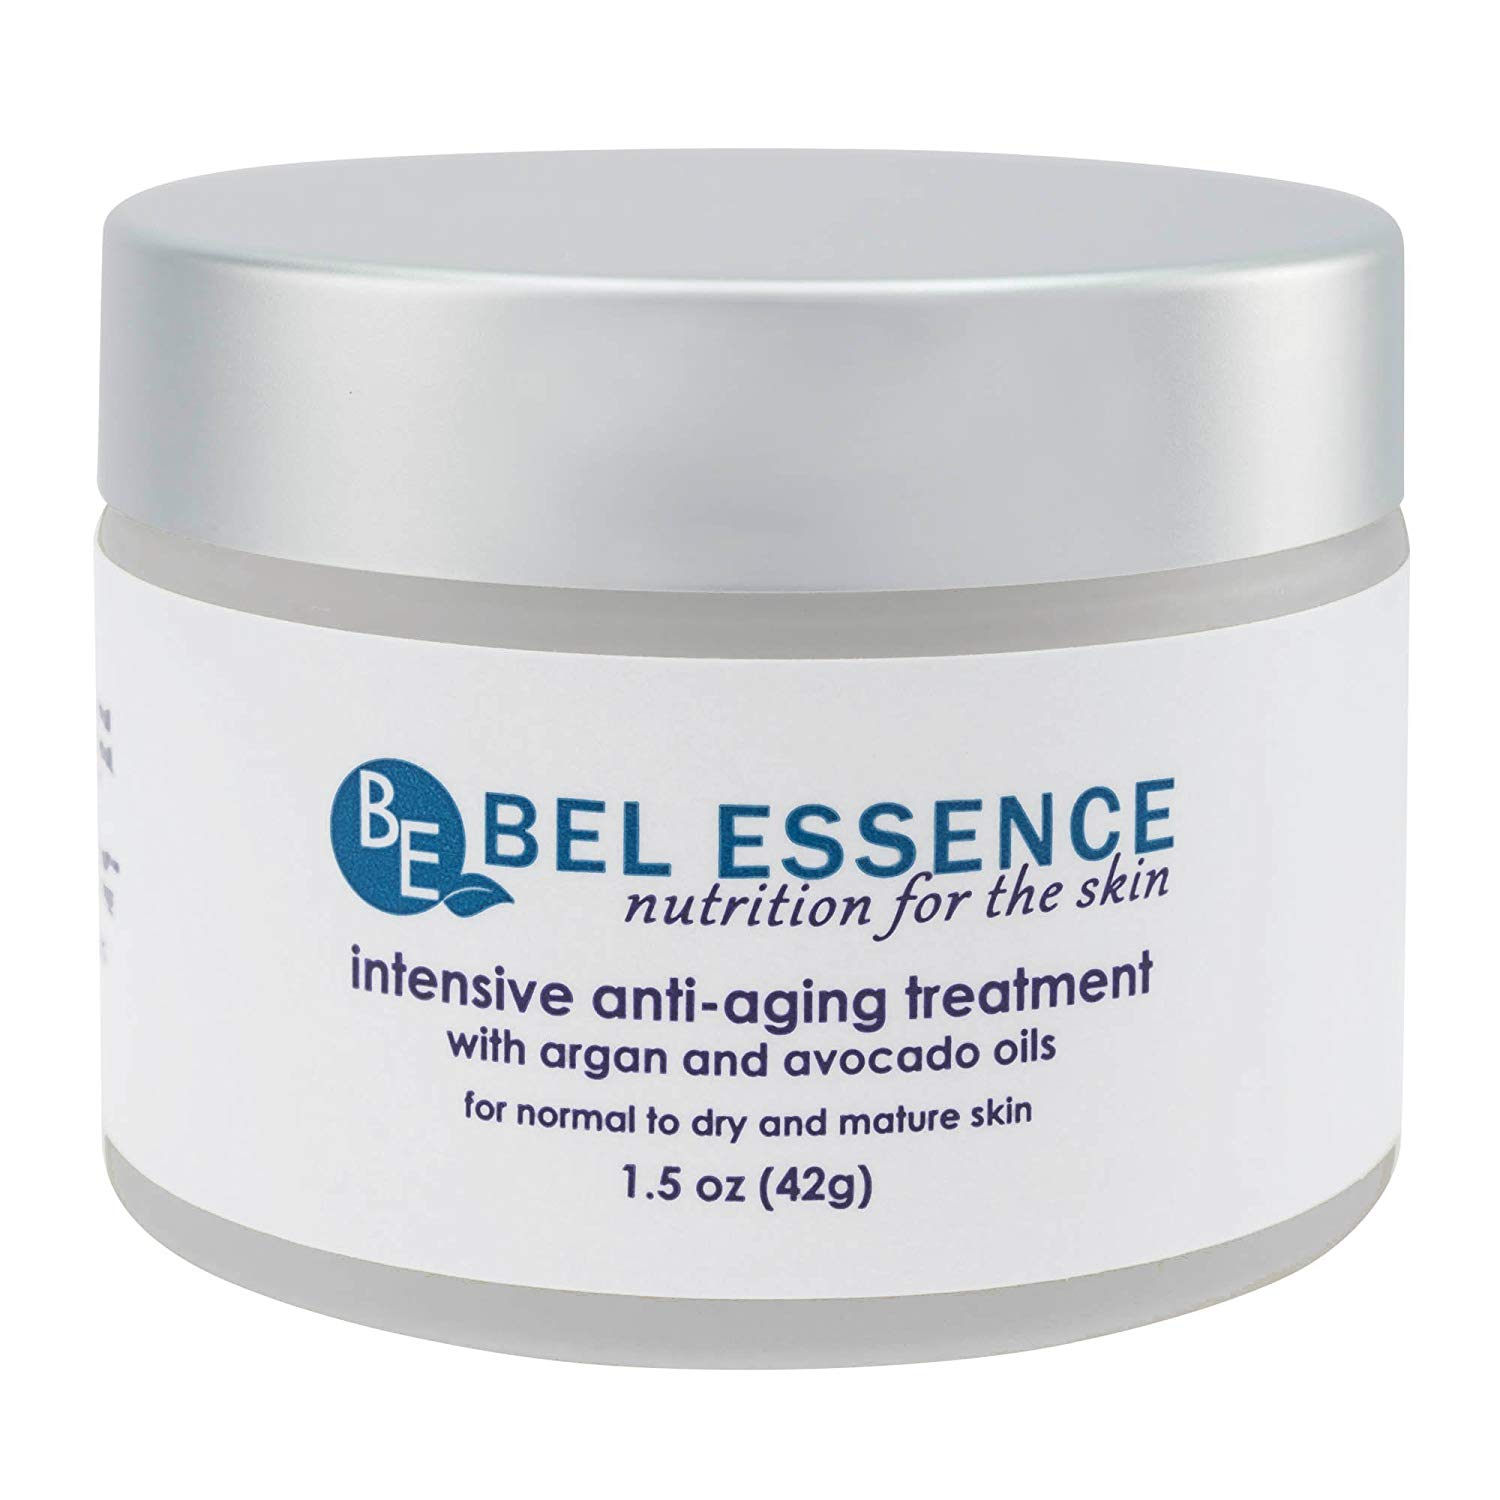 Bel Essence Intensive Anti Wrinkle Cream and Neck Cream. Natural and Organic oils combined for a powerful anti wrinkle cream and anti aging moisturizer, that hydrates the deep layers of your skin.